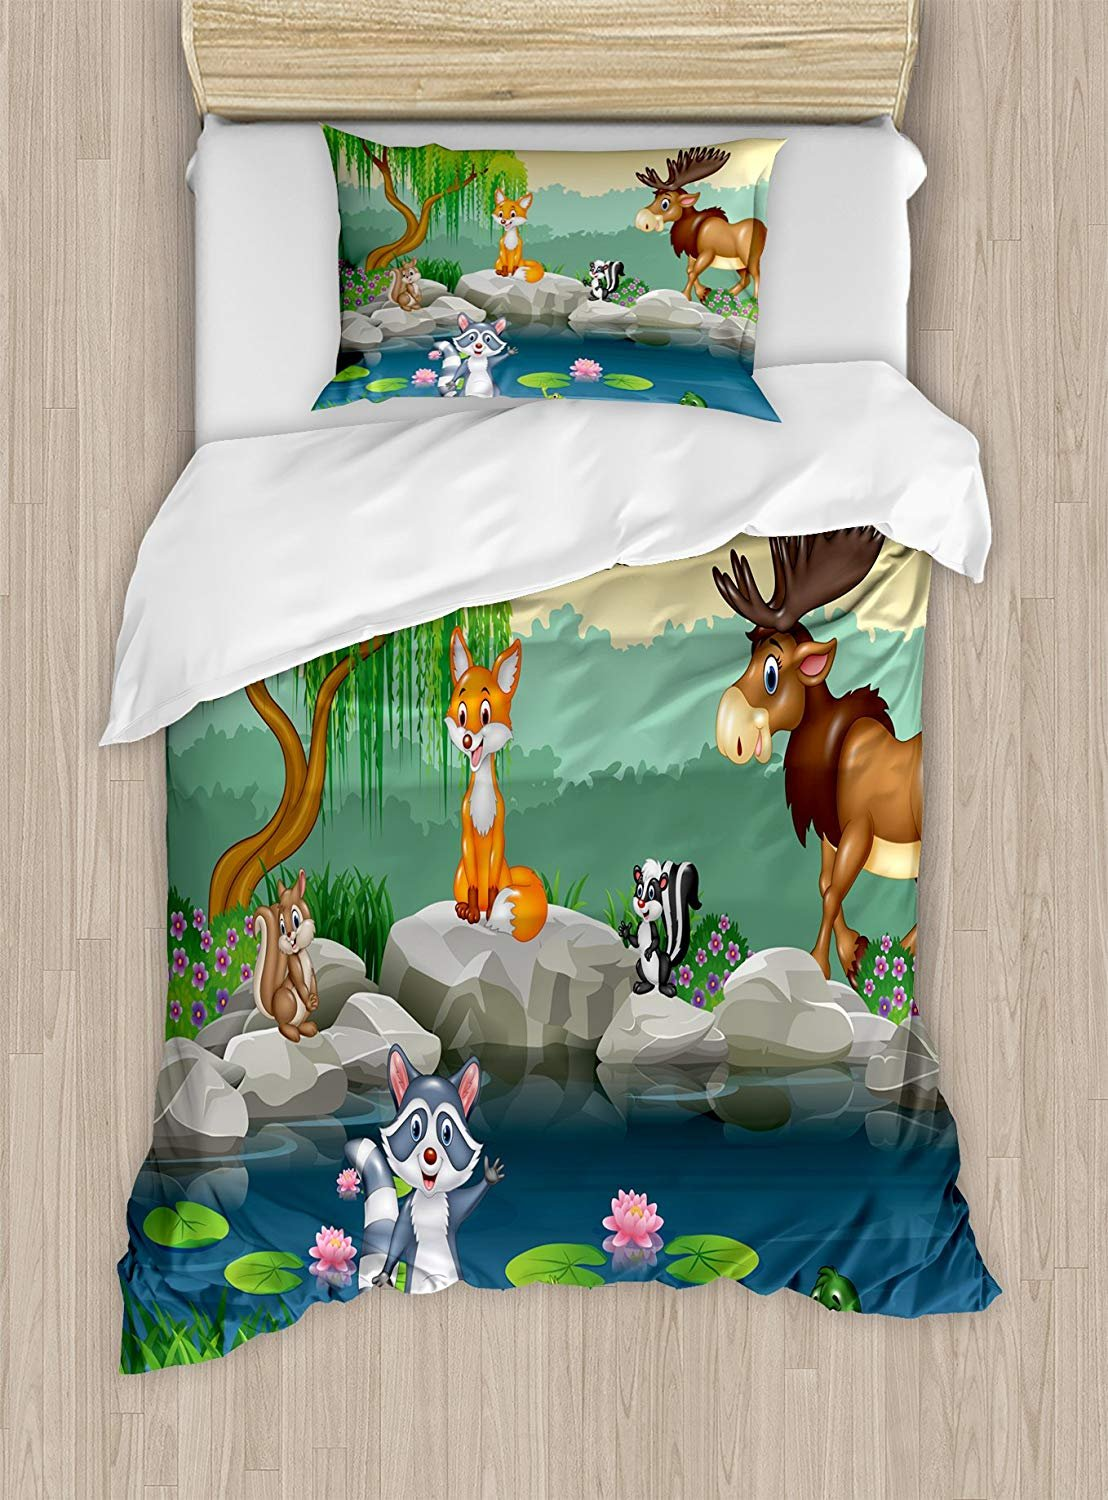 Twin XL Extra Long Bedding Set,Cartoon Duvet Cover Set,Funny Mascots Animals by The Lake Moose Fox Squirrel Raccoon Kids Nursery Theme,Cosy House Collection 4 Piece Bedding Sets